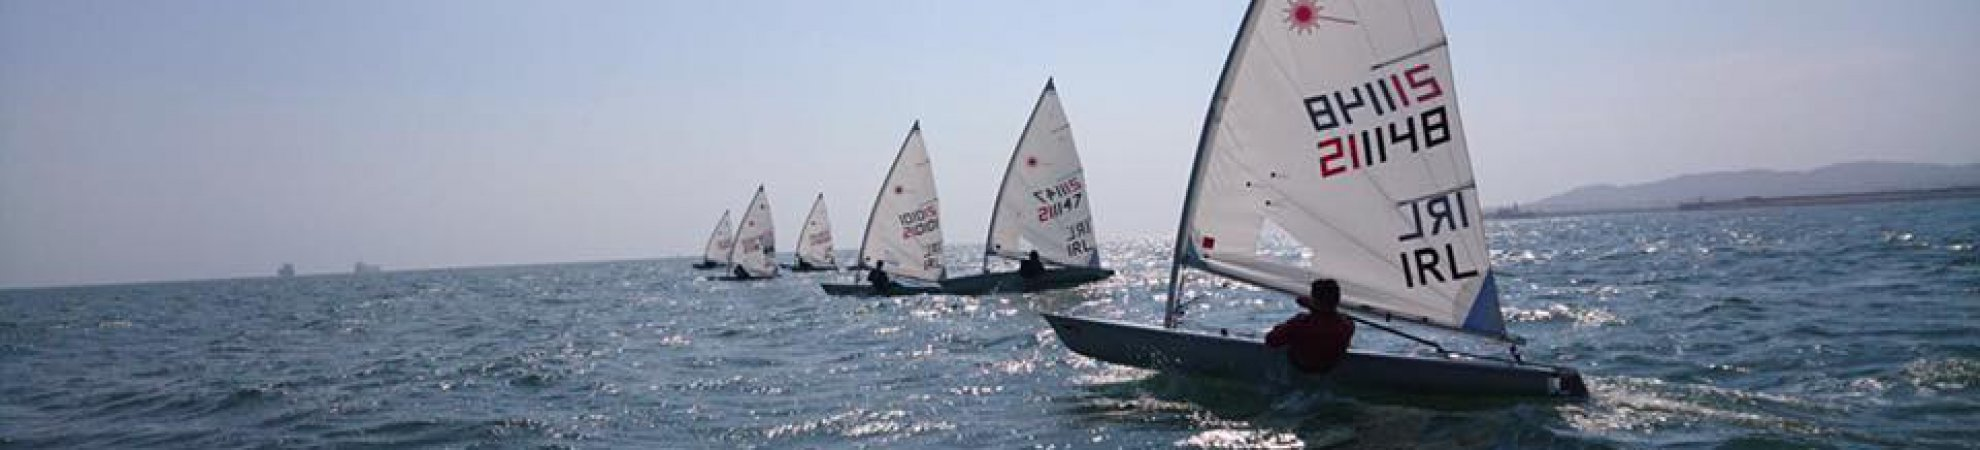 Laser Radial Women's World Championships